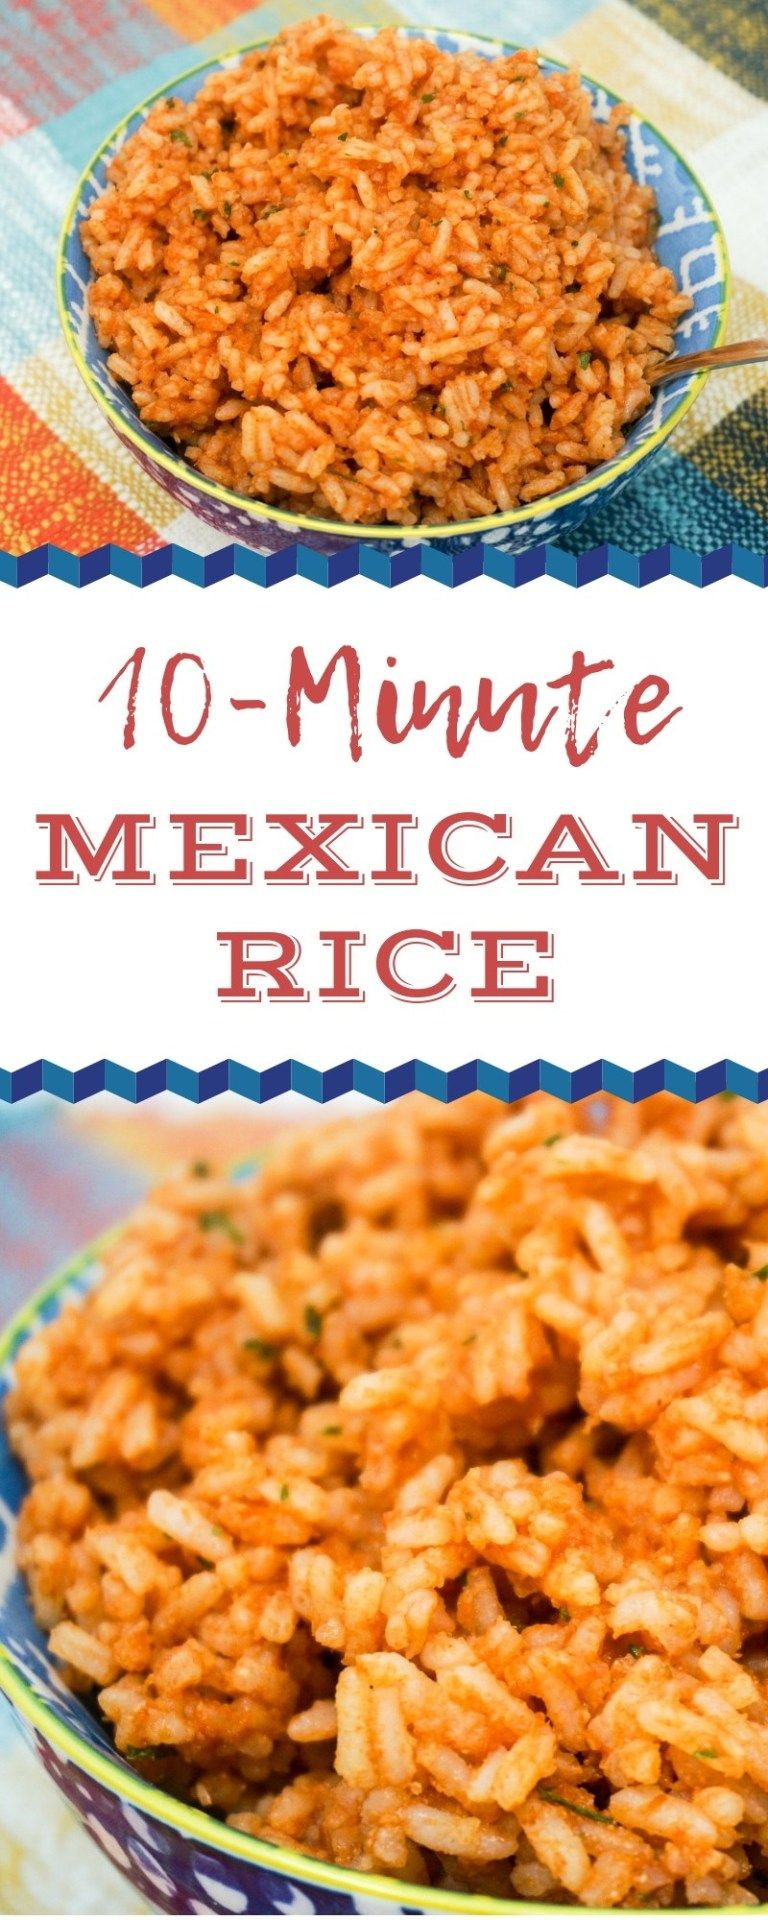 10 Minute Mexican Rice Recipe Mexican Rice Recipe Easy Mexican Rice Recipes Instant Rice Recipes